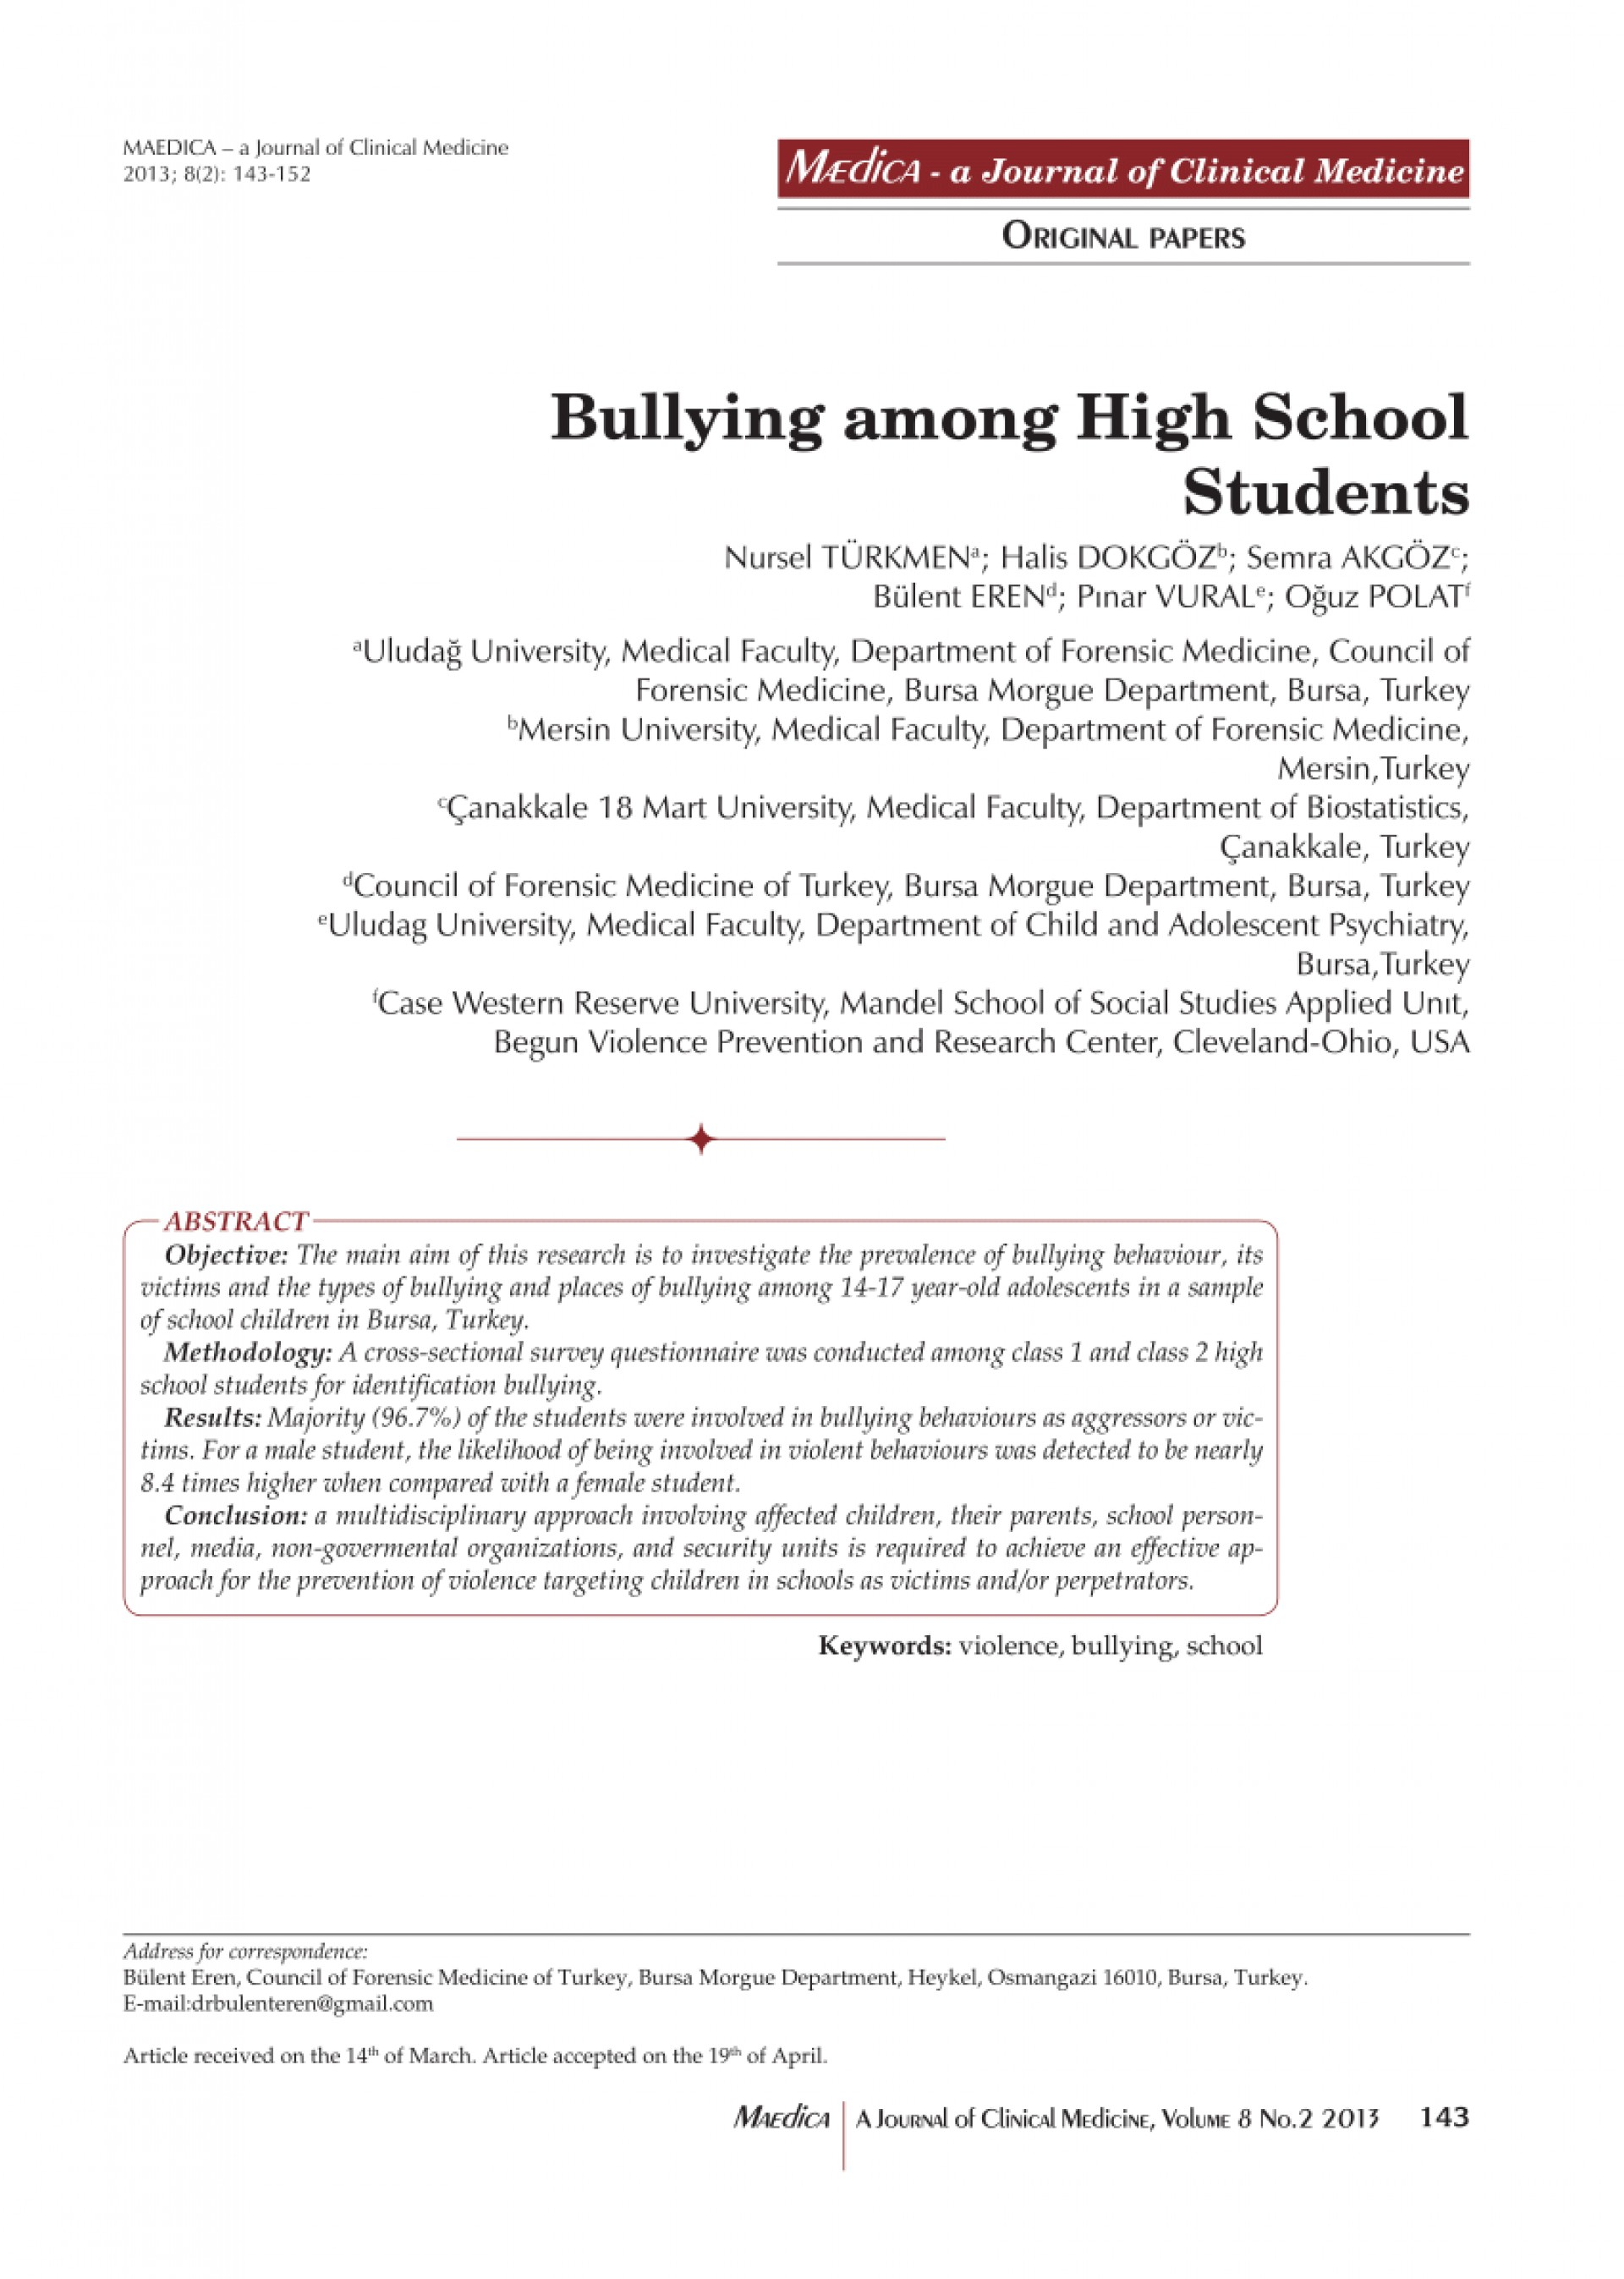 003 Research Paper About Bullying Phenomenal Slideshare Chapter 2 On Cyberbullying Pdf 1920